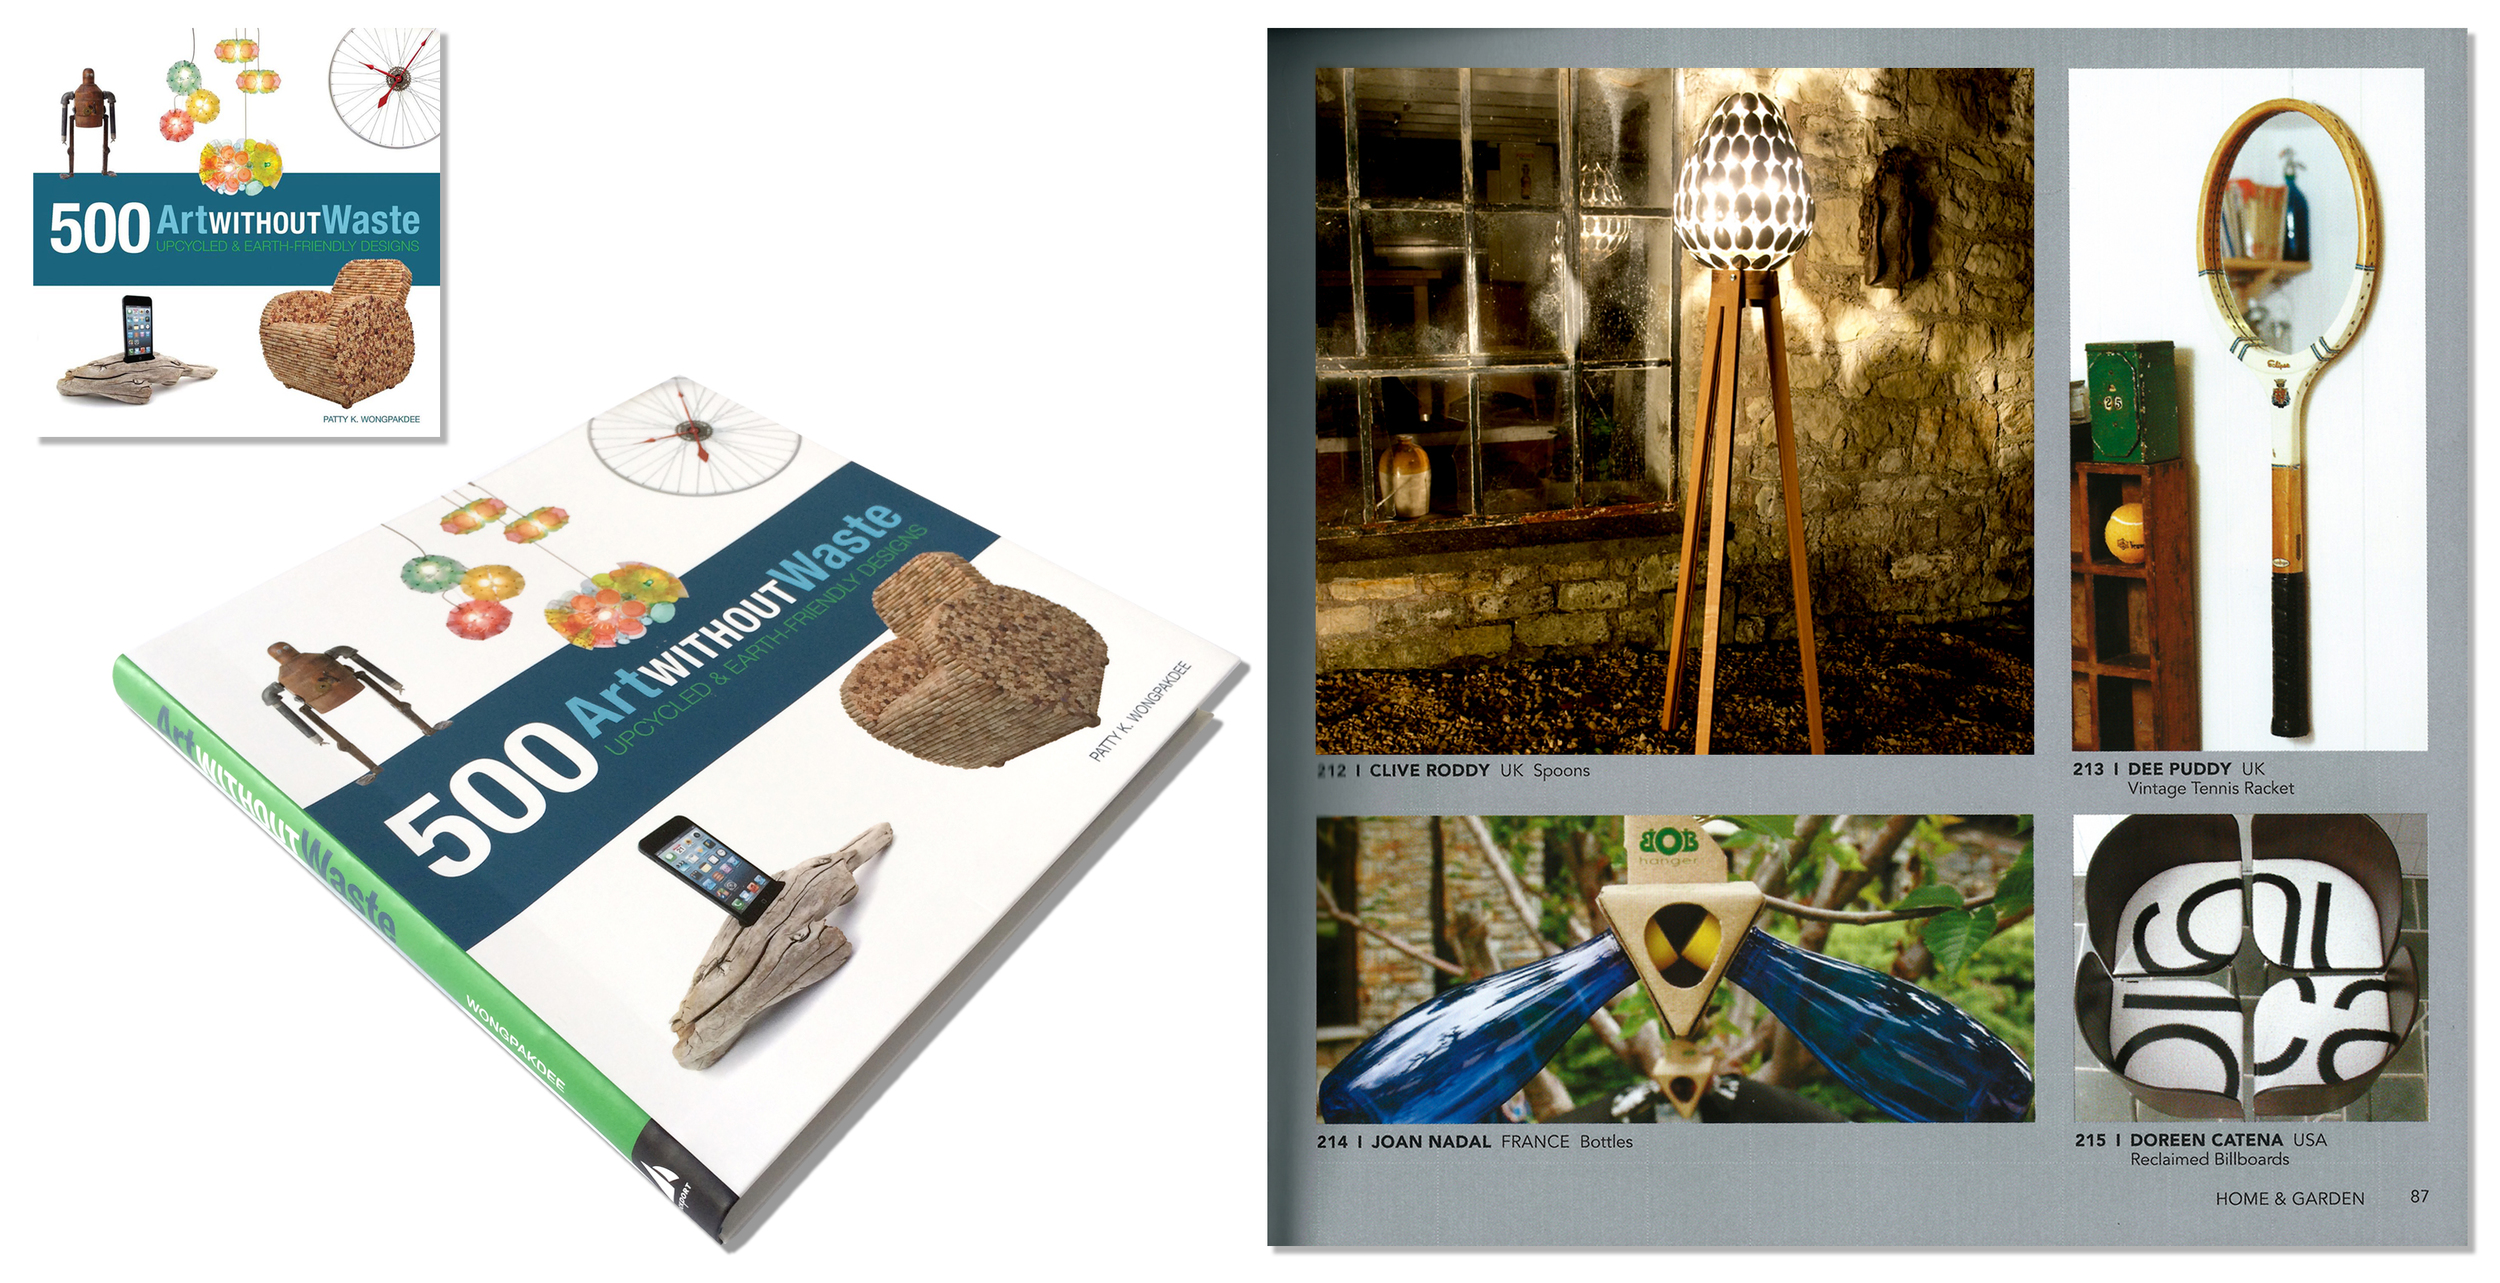 'Spoon Lamp' featured in design book 'Art without waste'. Published in 2014.USA.